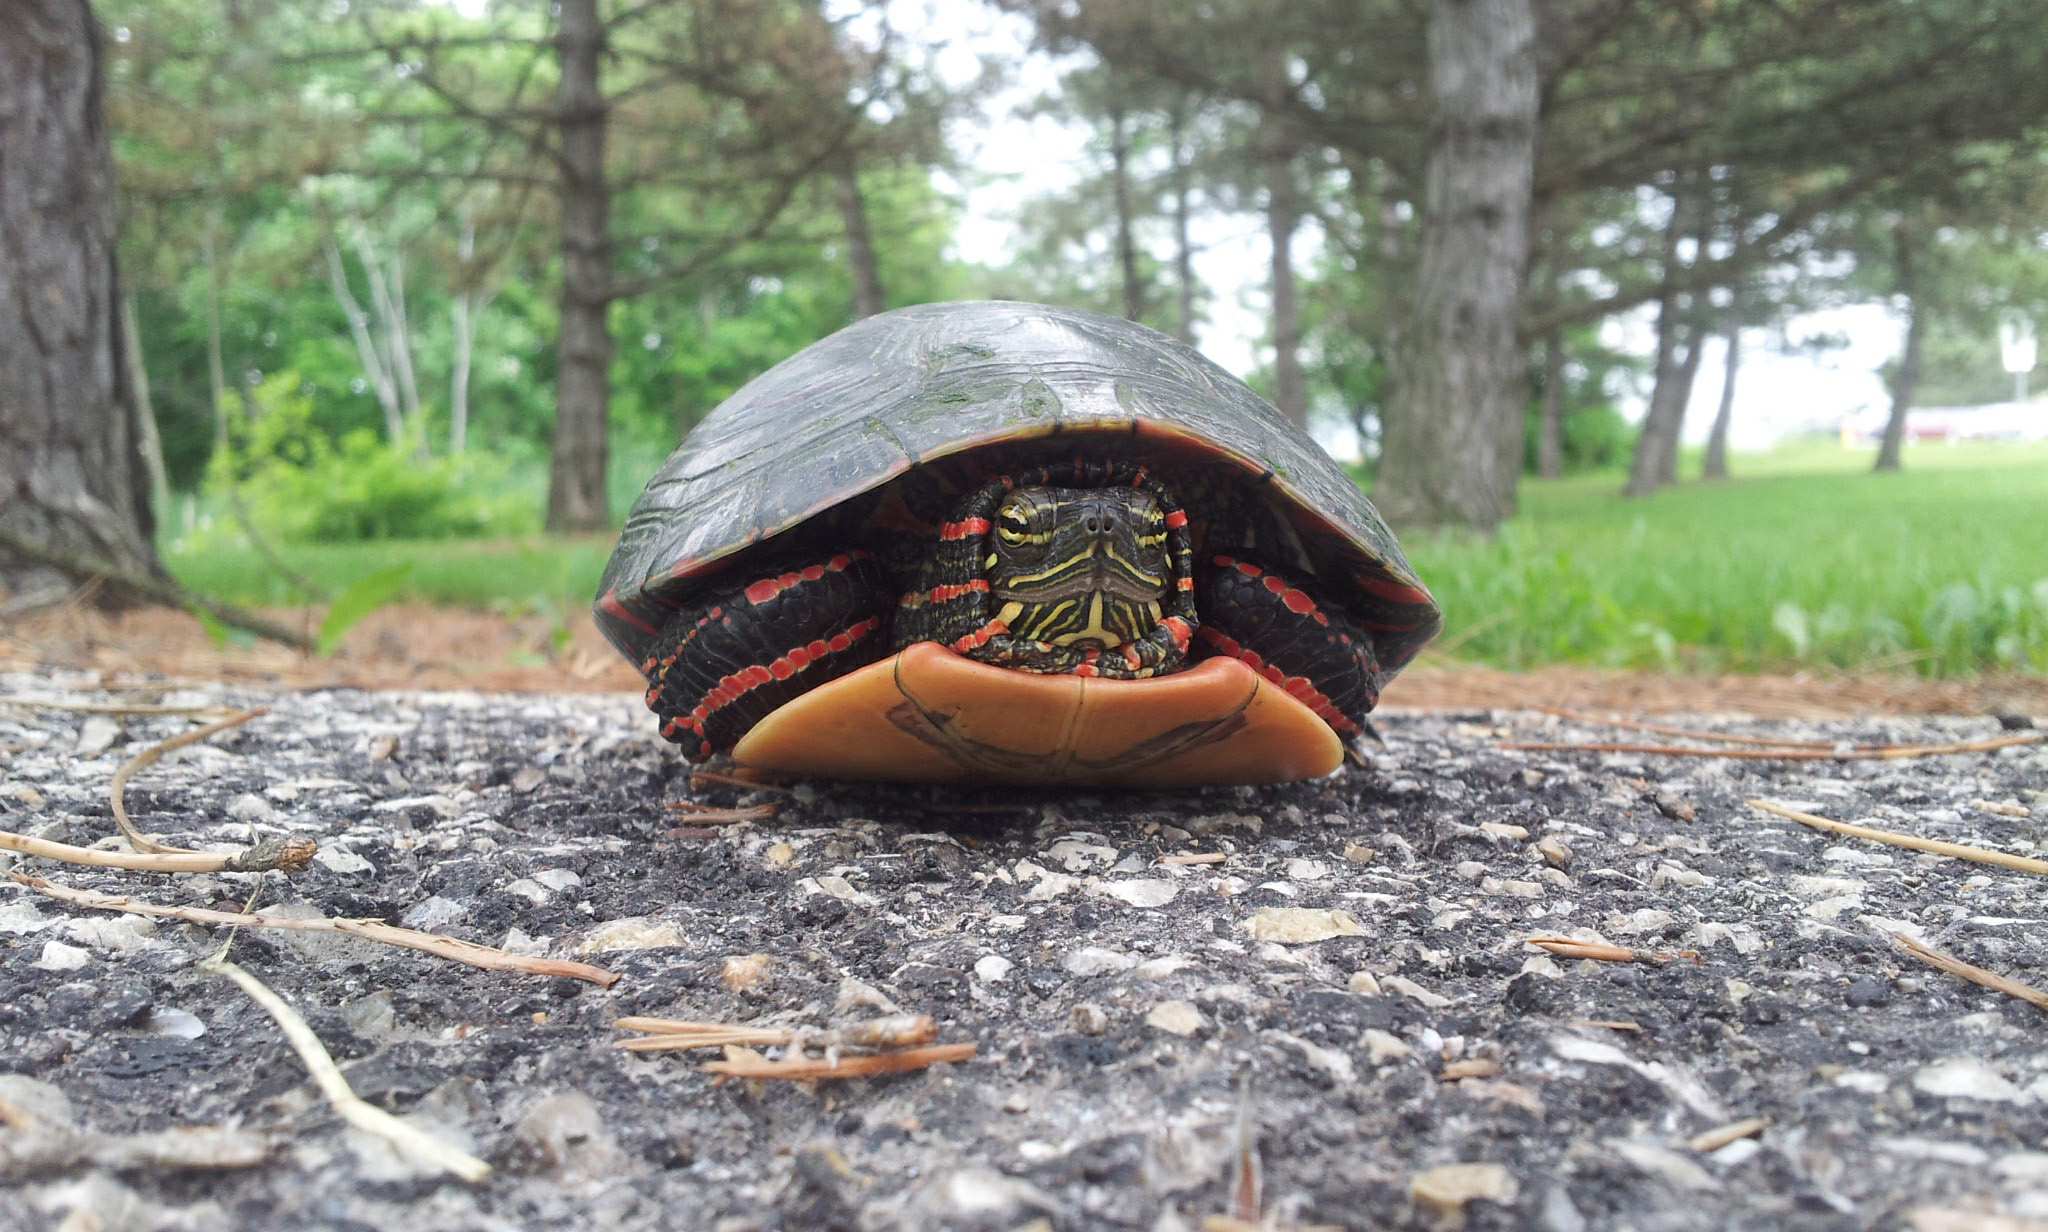 In these pages we've seen photos of a spiny softshell turtle and a snapping turtle. Now we feature this close-up of a painted turtle near the woods between Wilson Hall and Lederman Science Center. Photo: Sarah Fraser